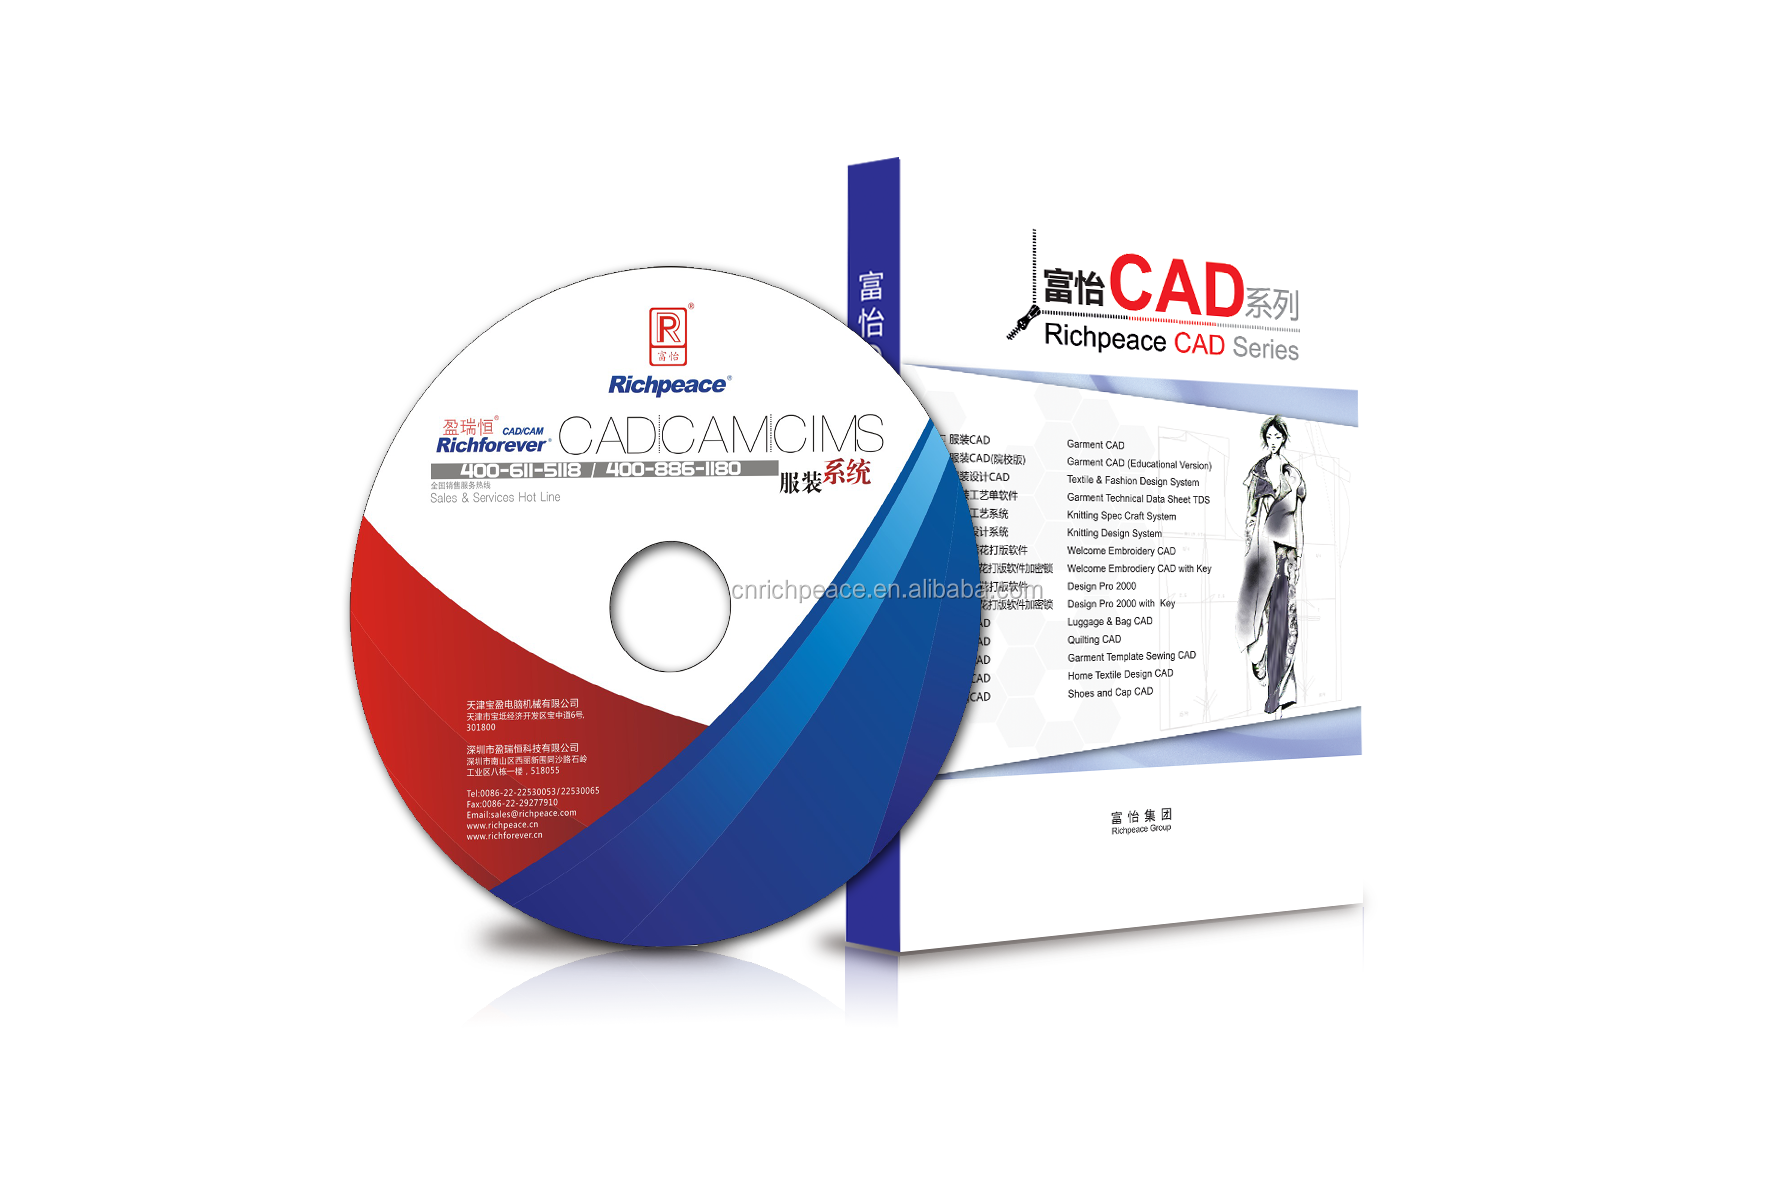 Richpeace Cad Software V9 0 For Apparel Application Buy Apparel Cad Software Garment Costing Software Cad Pattern Making Software Product On Alibaba Com